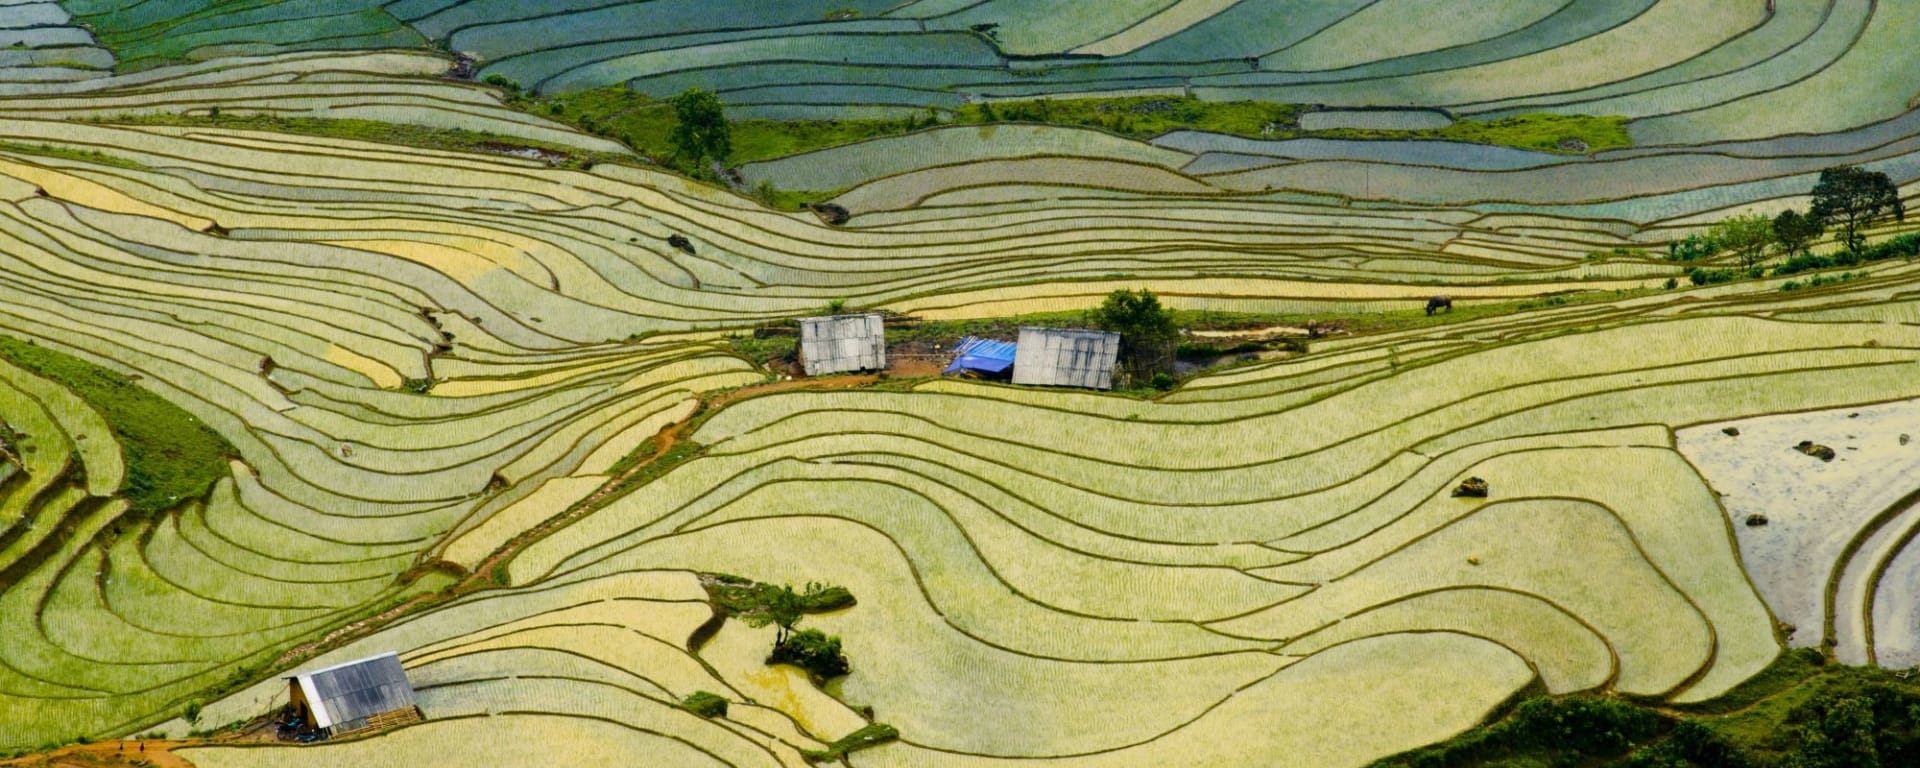 Abenteuer Sapa - Hiking & Biking Package ab Hanoi: Beautiful terraced rice field in Lao cai province